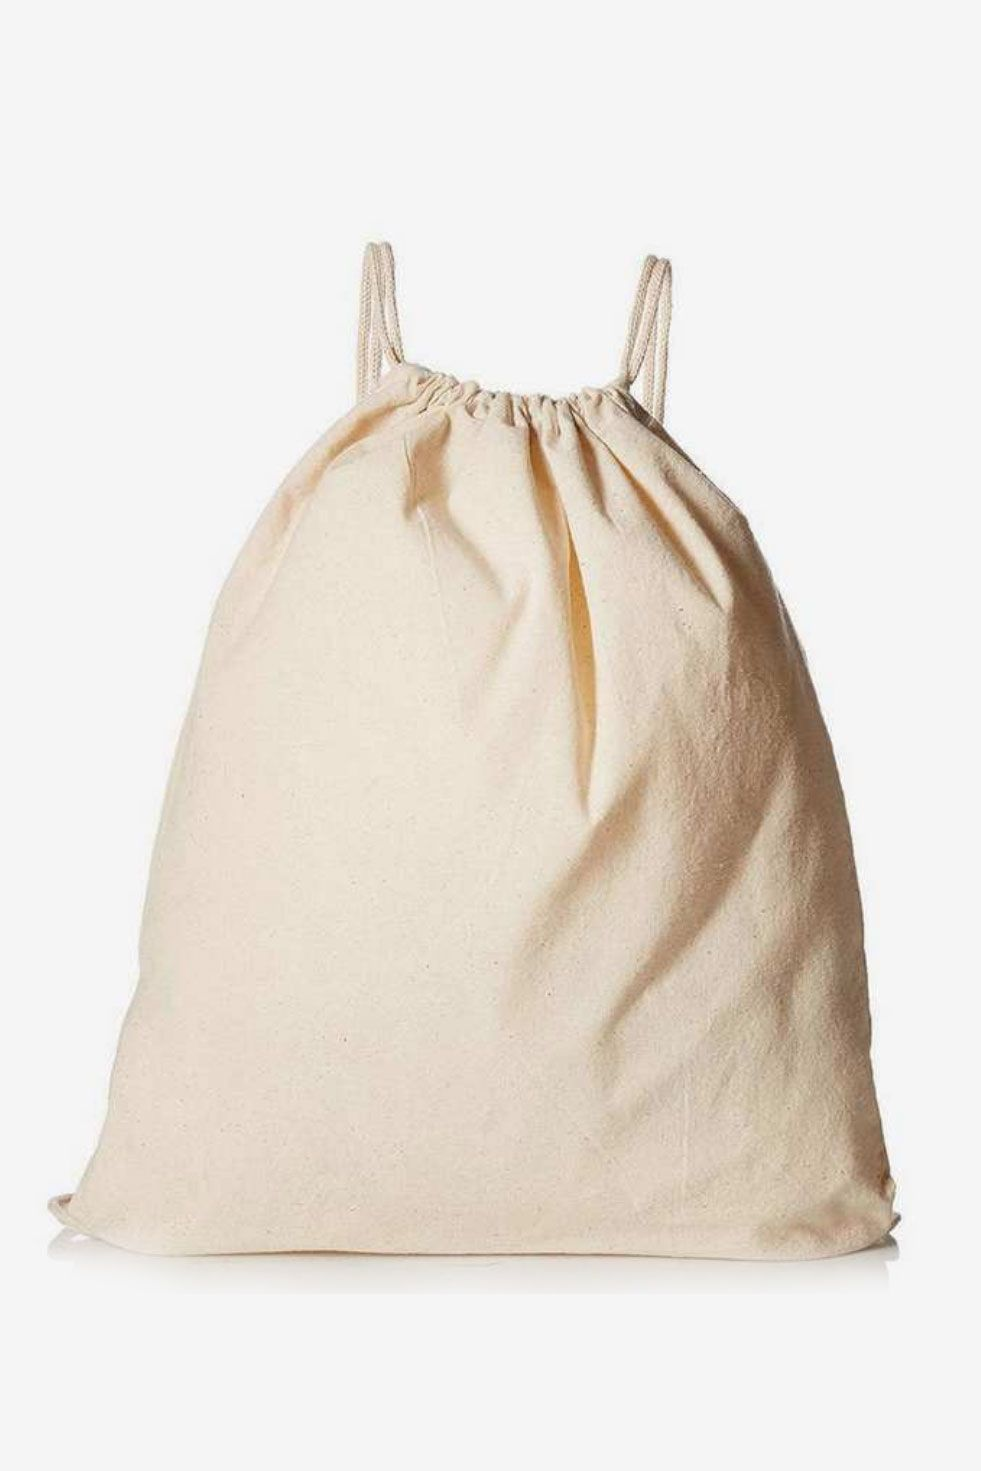 Yingkor Cotton Canvas Muslin Drawstring Bags